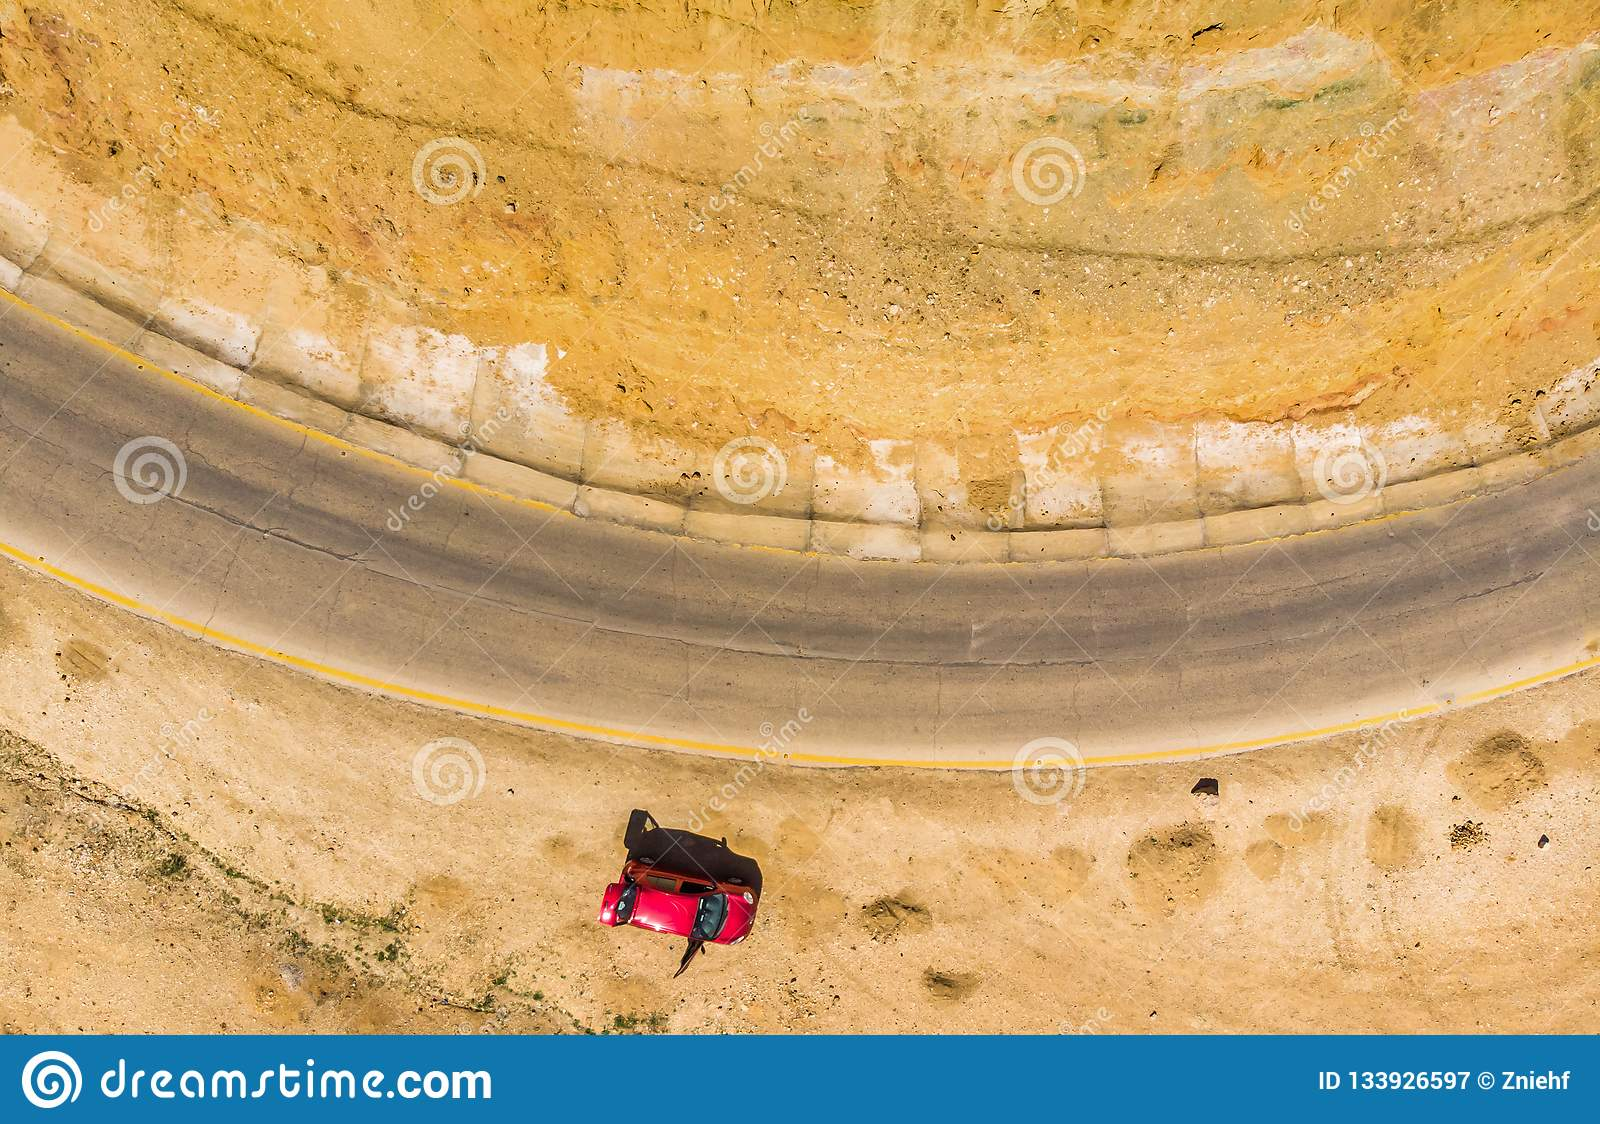 Vertical aerial photograph of the cliffs and the road at the Dead Sea in Jordan, with a parked red car. taken with the drone